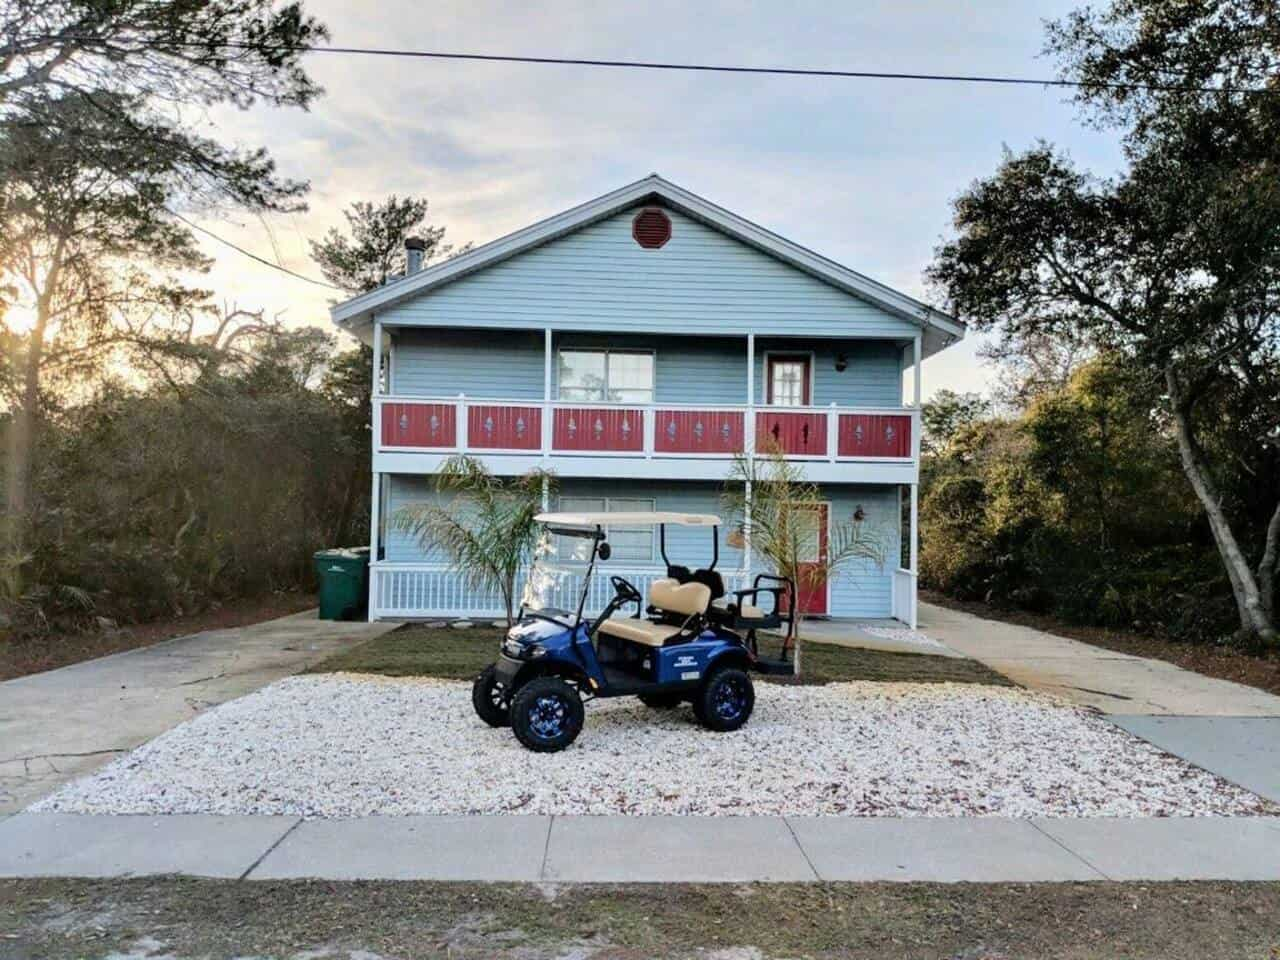 Image of Airbnb rental in Destin